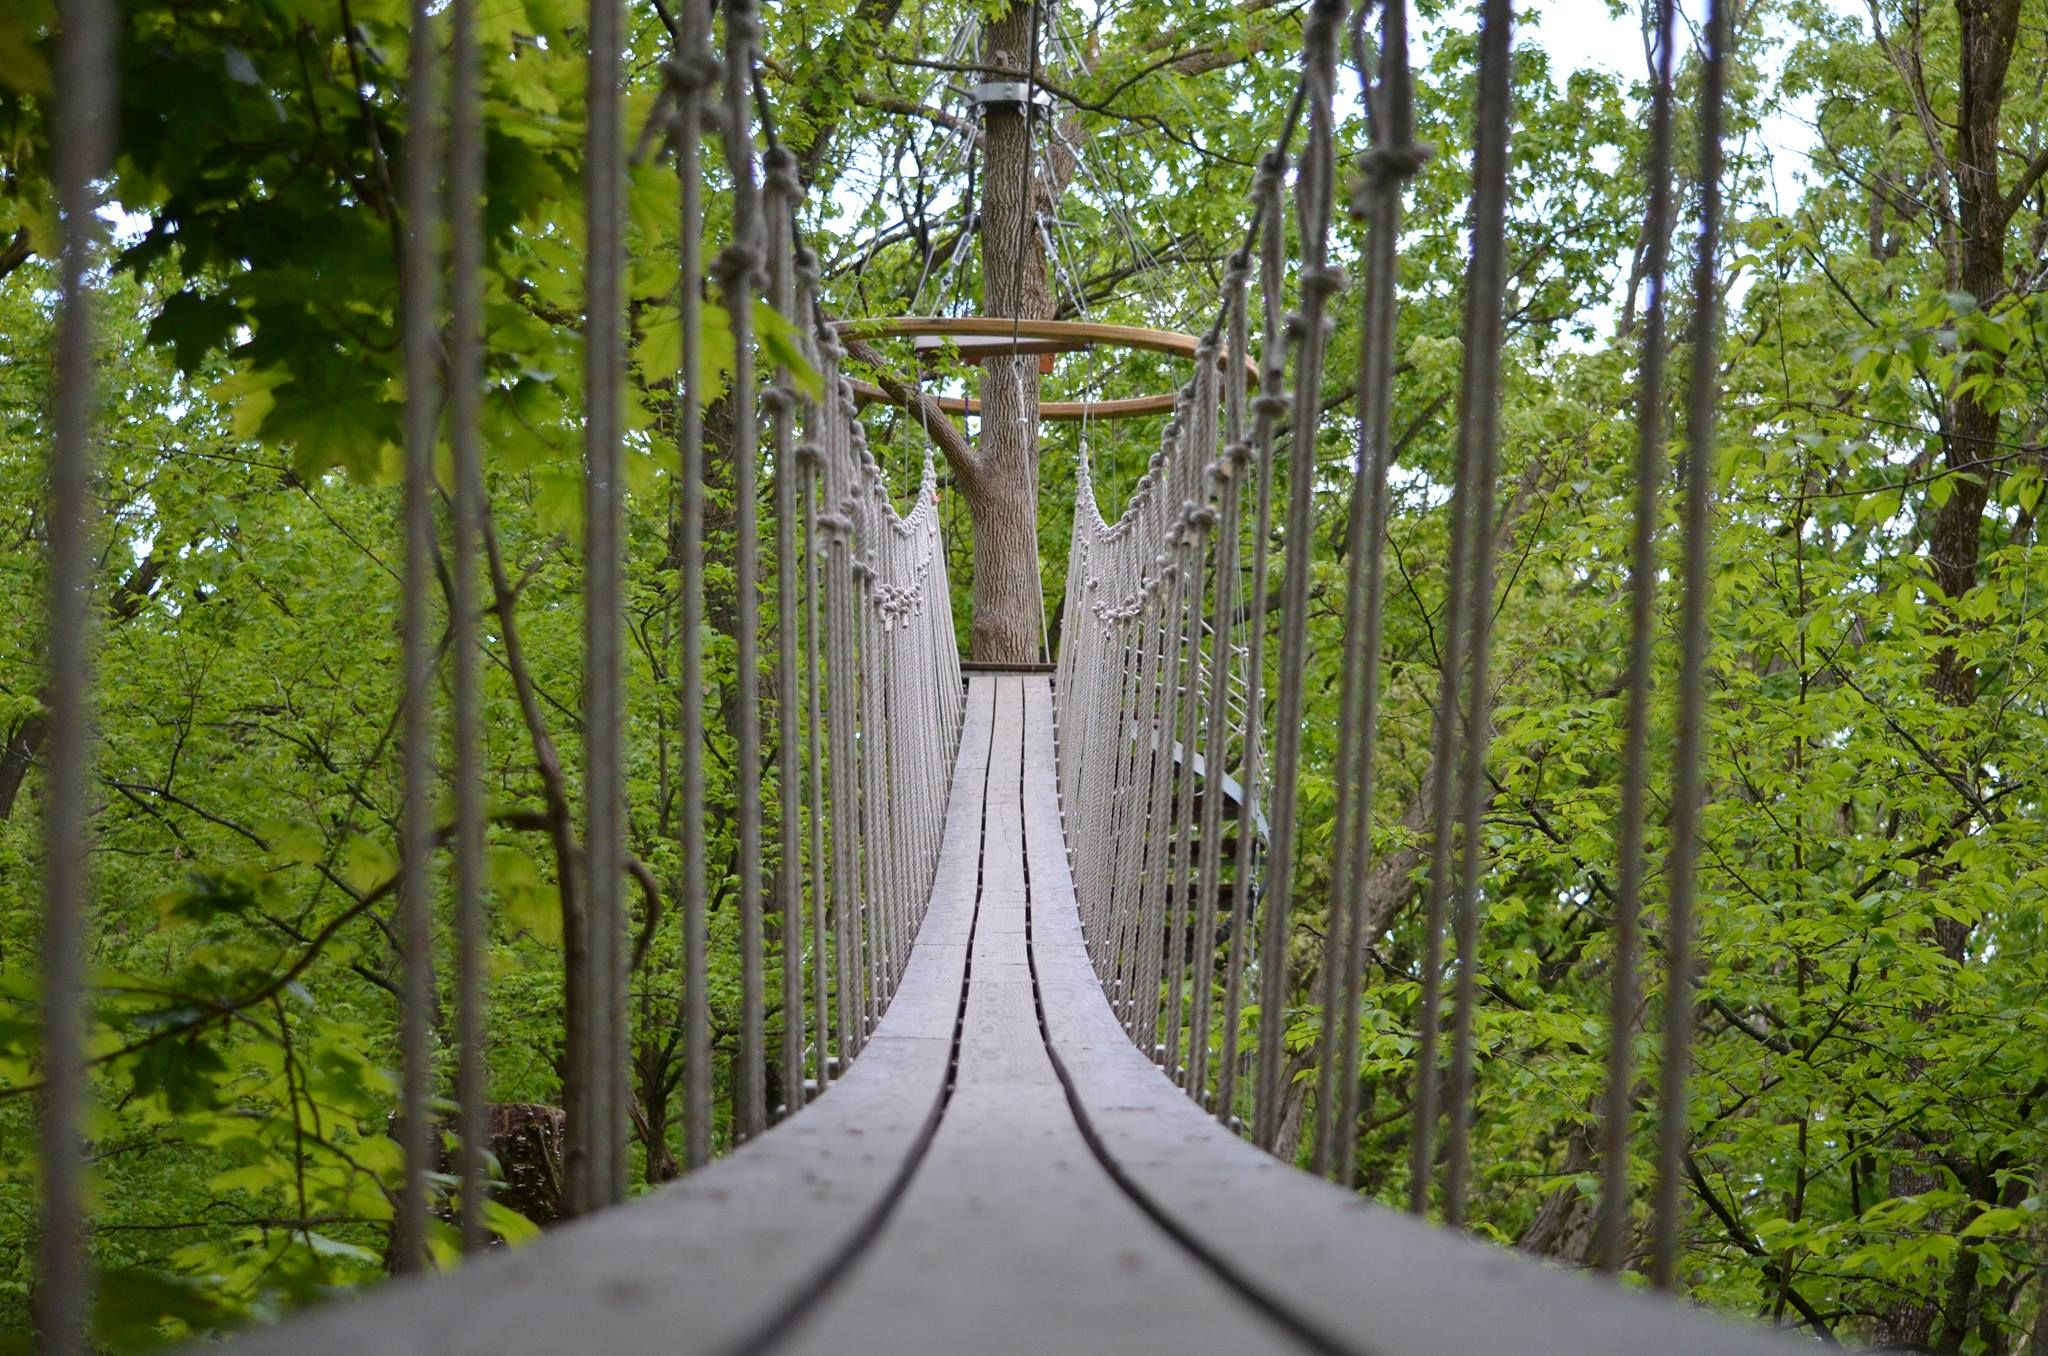 Canopy Walk Lake Geneva WI. Ever wish to walk atop the trees? & This Canopy Walk In Wisconsin Will Make Your Stomach Drop | Lake ...